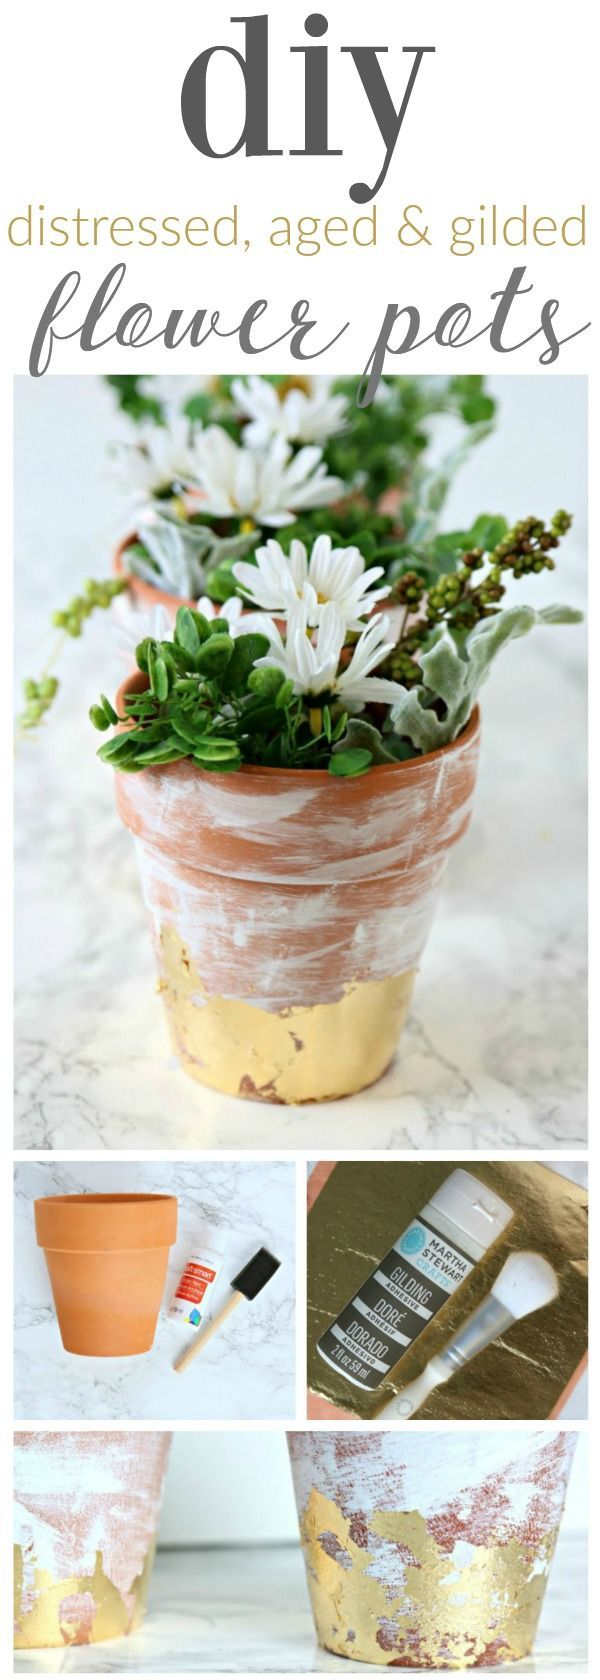 Top 30 stunning low budget diy garden pots and containers 187 home - Diy Distressed Gold Leaf Terracotta Pots